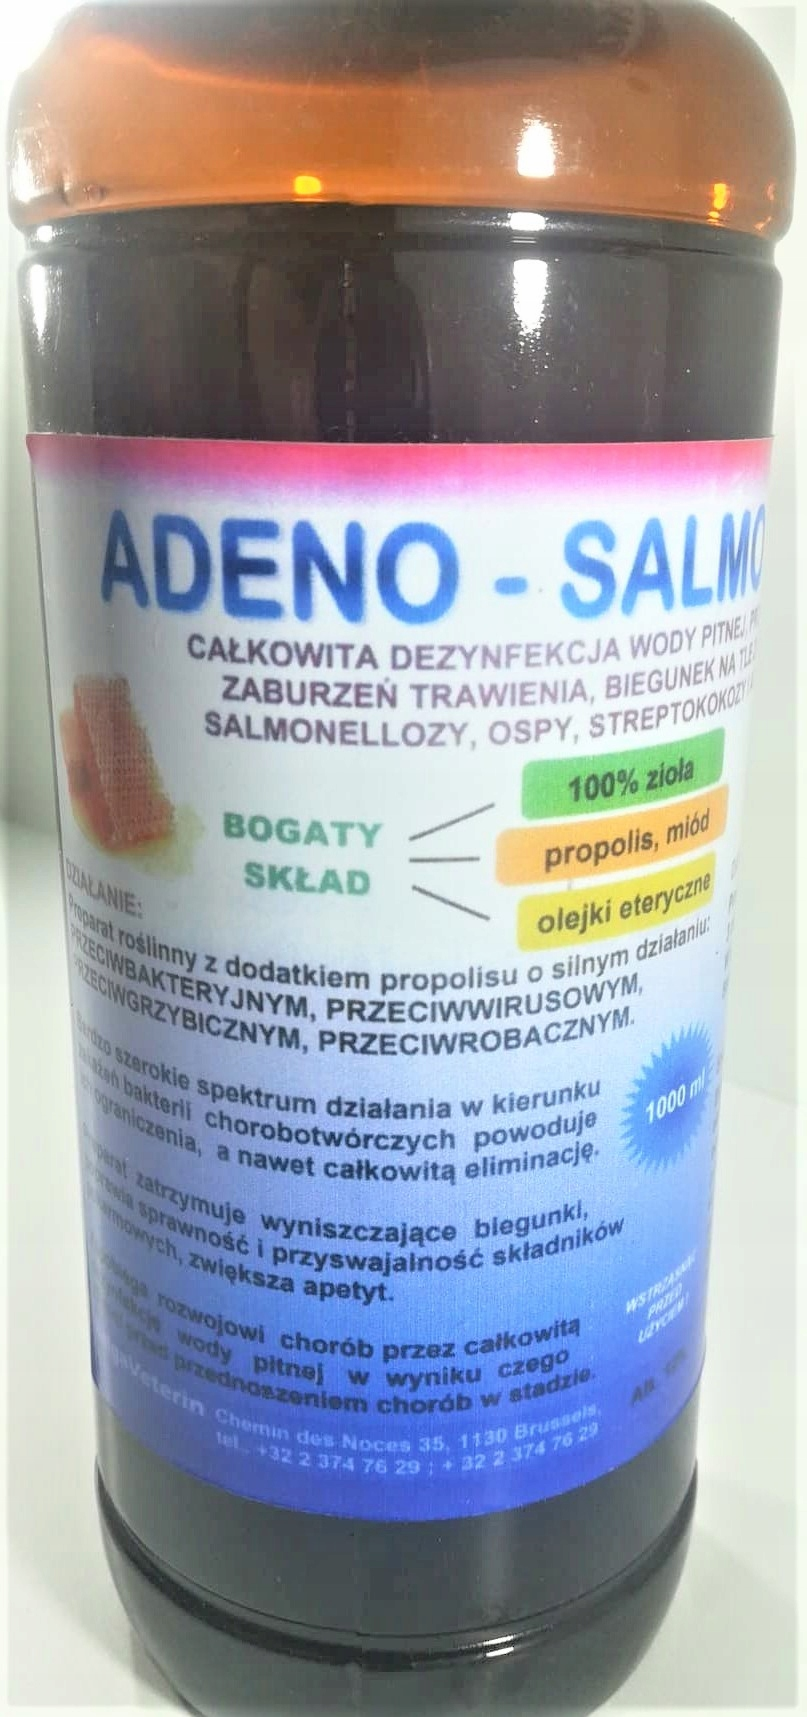 ADENO-SALMO STOP - 1000 мл - МЕД, МАСЛА, ТРАВЫ